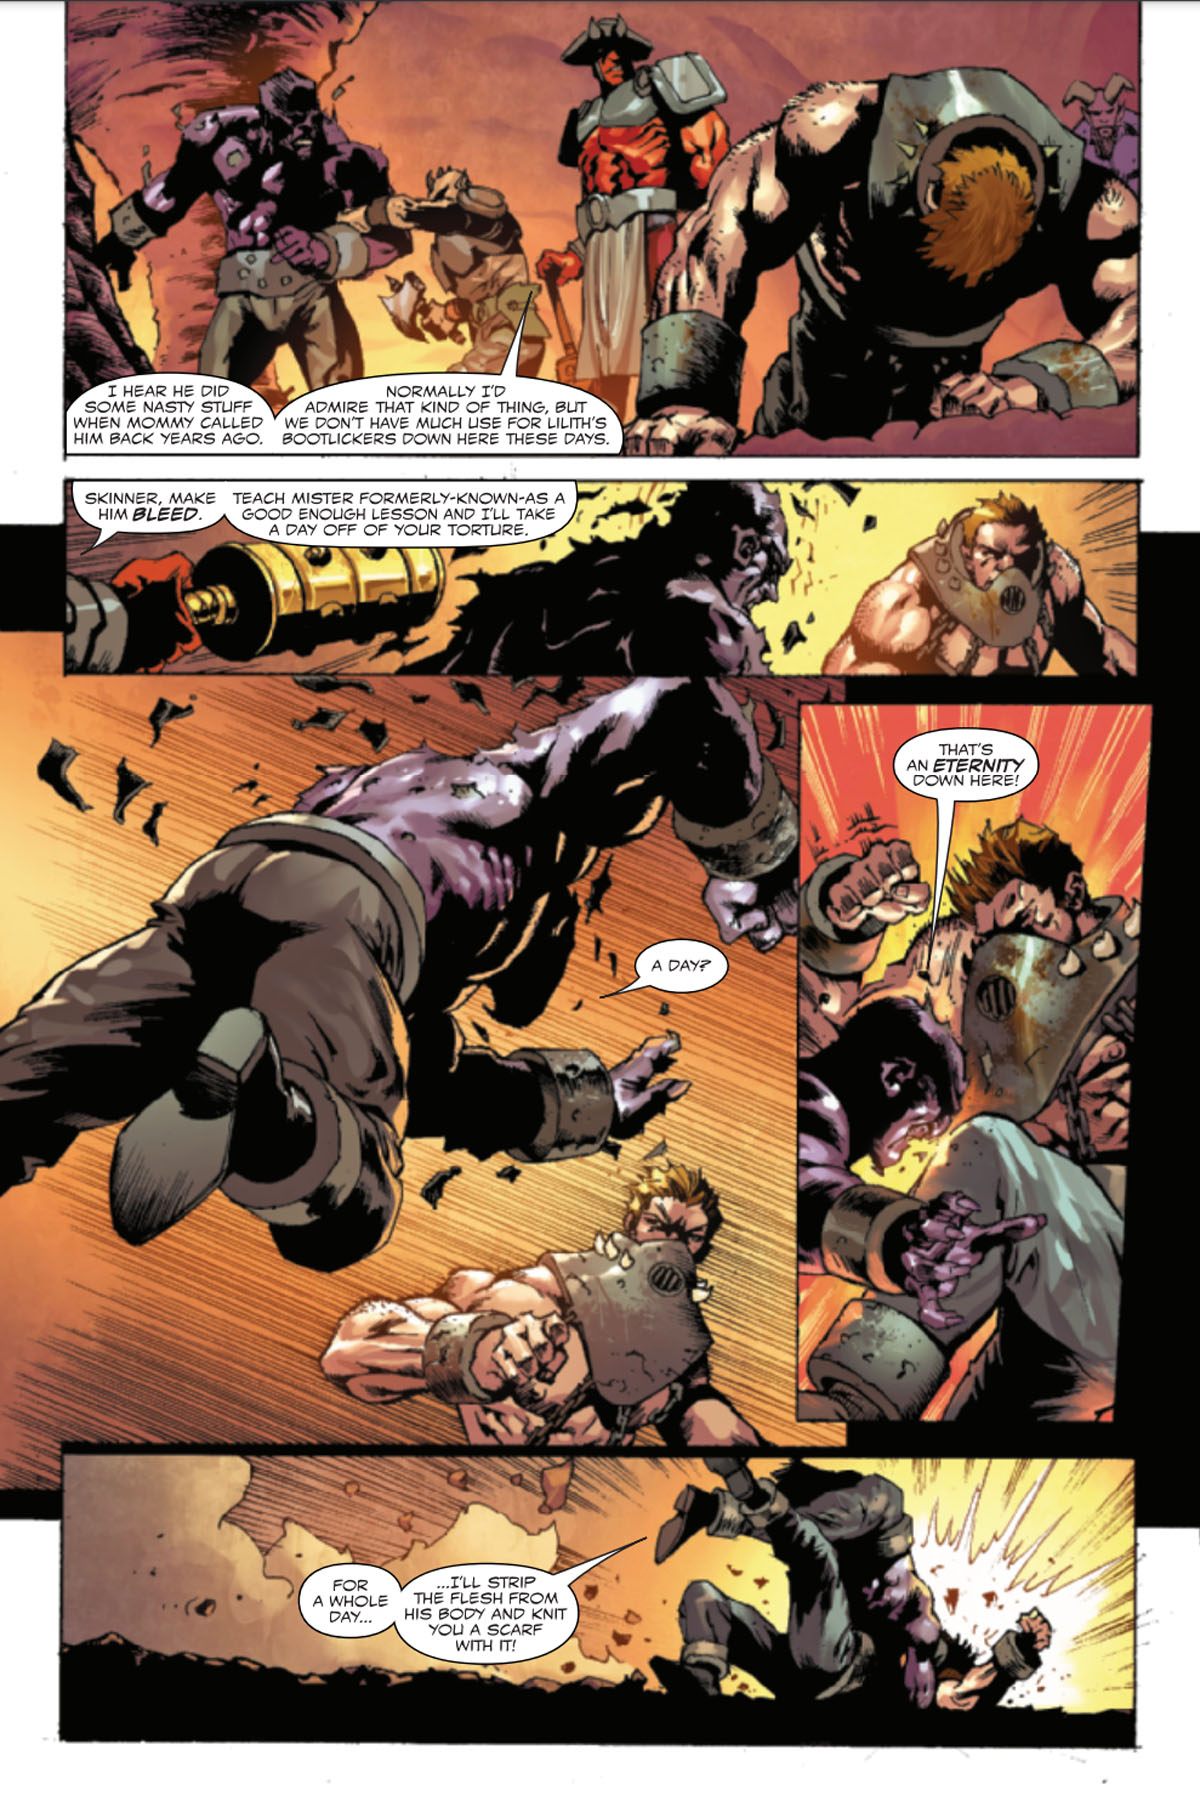 Ghost Rider: Return of Vengeance #1 page 2